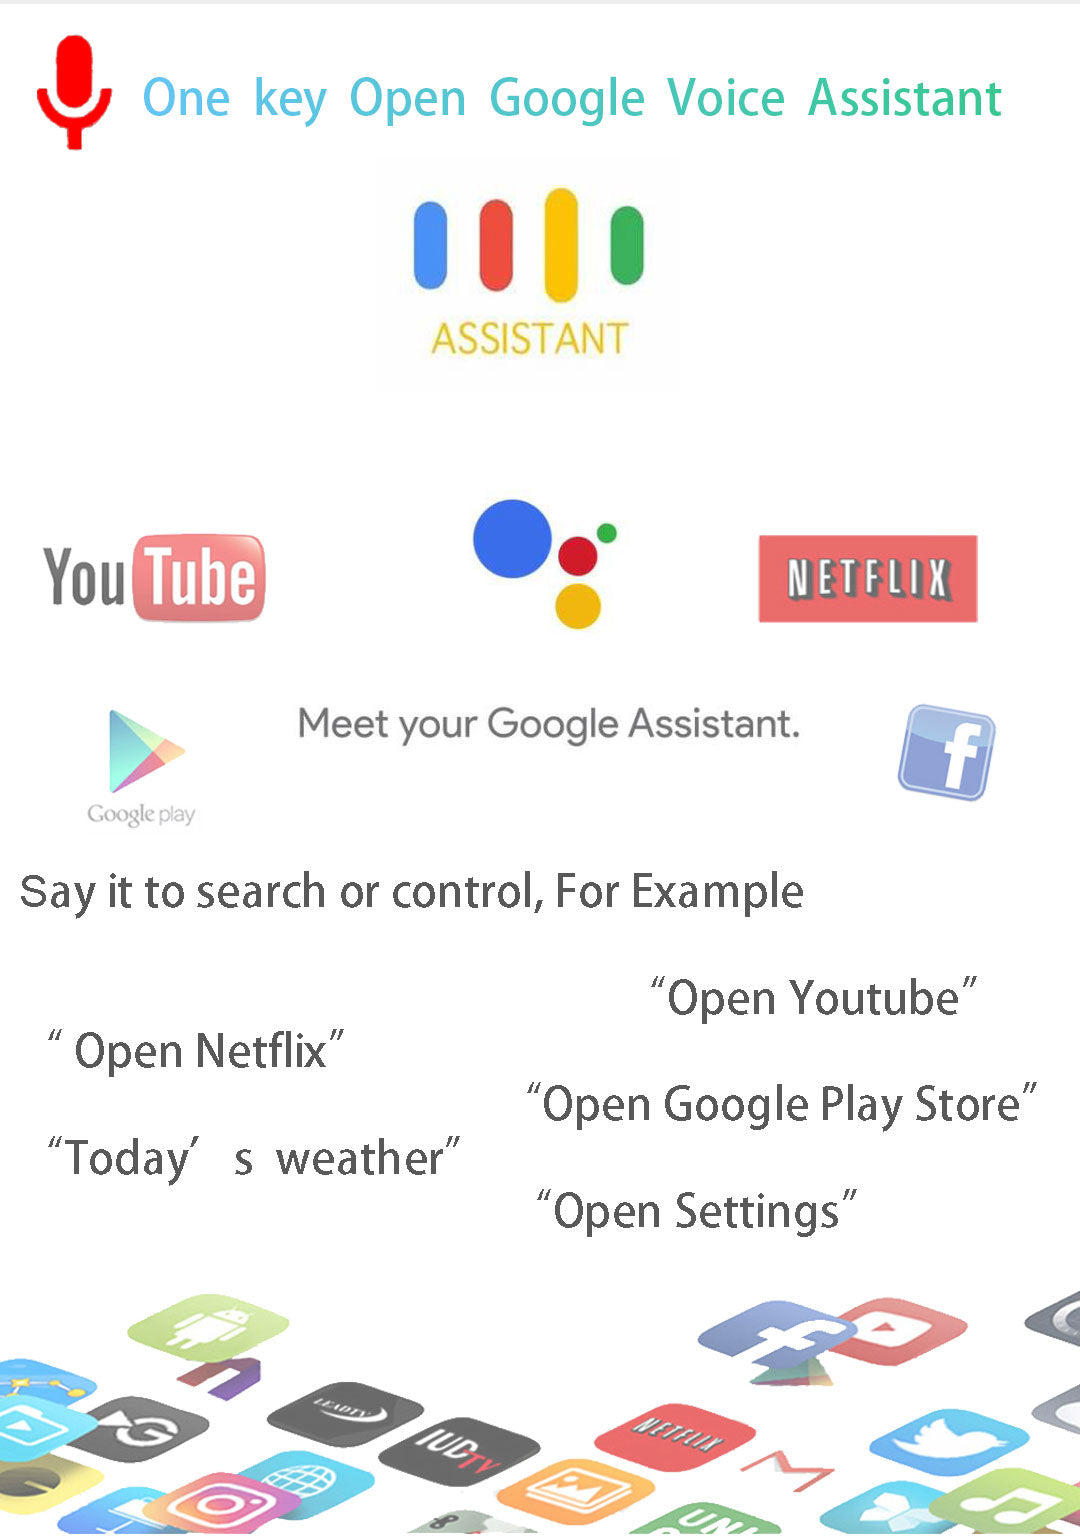 one key open Google voice assistant Air remote mouse